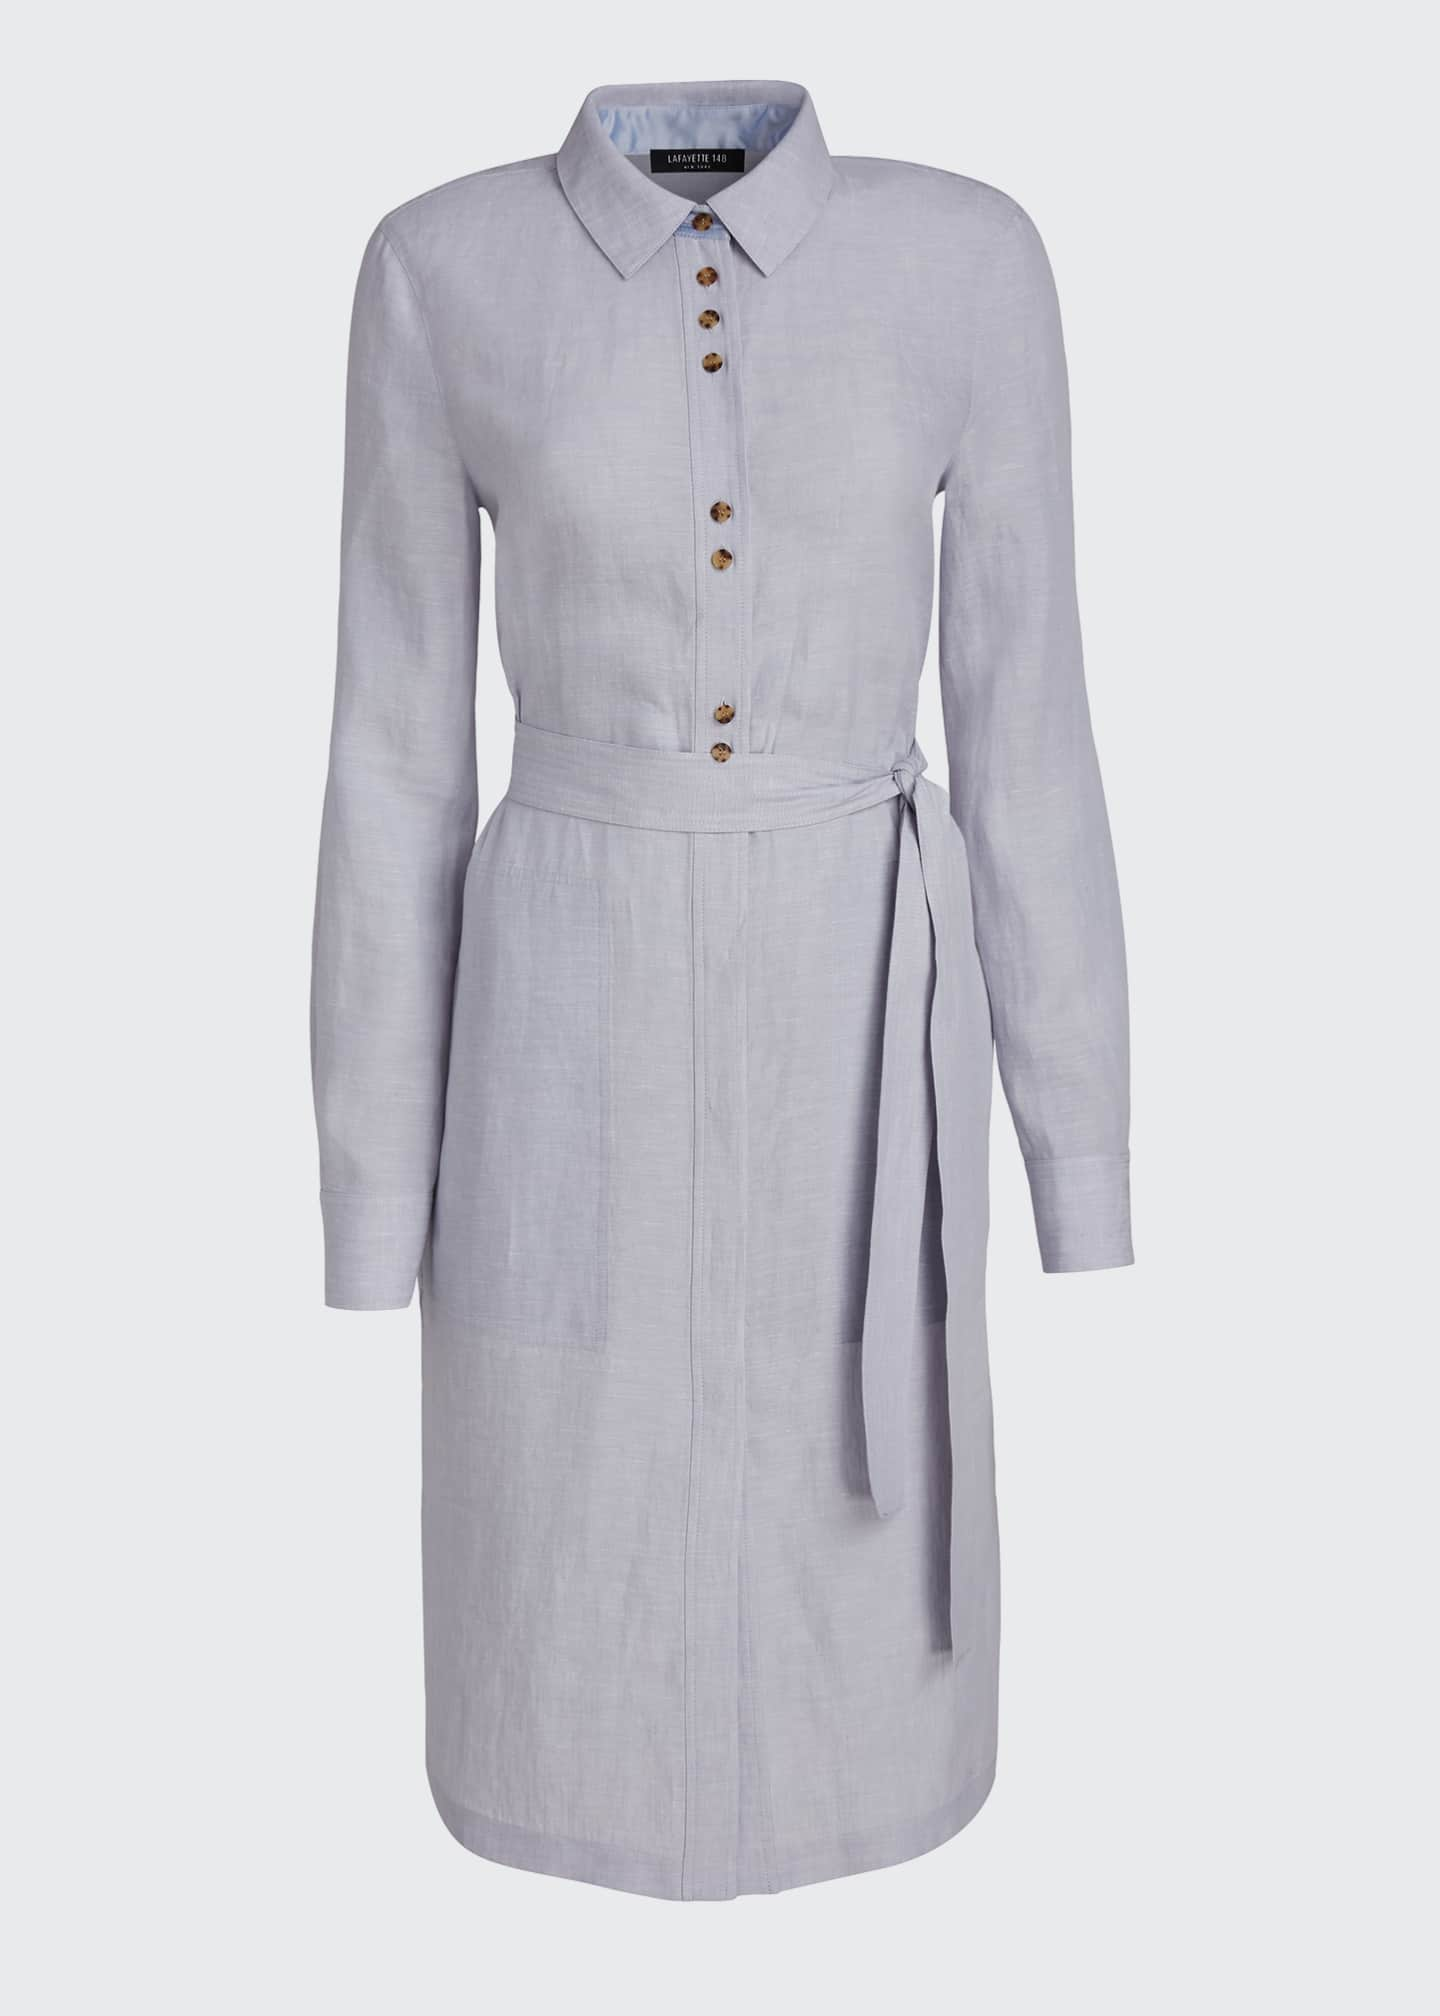 Image 5 of 5: Michlle Illustrious Linen Duster Dress